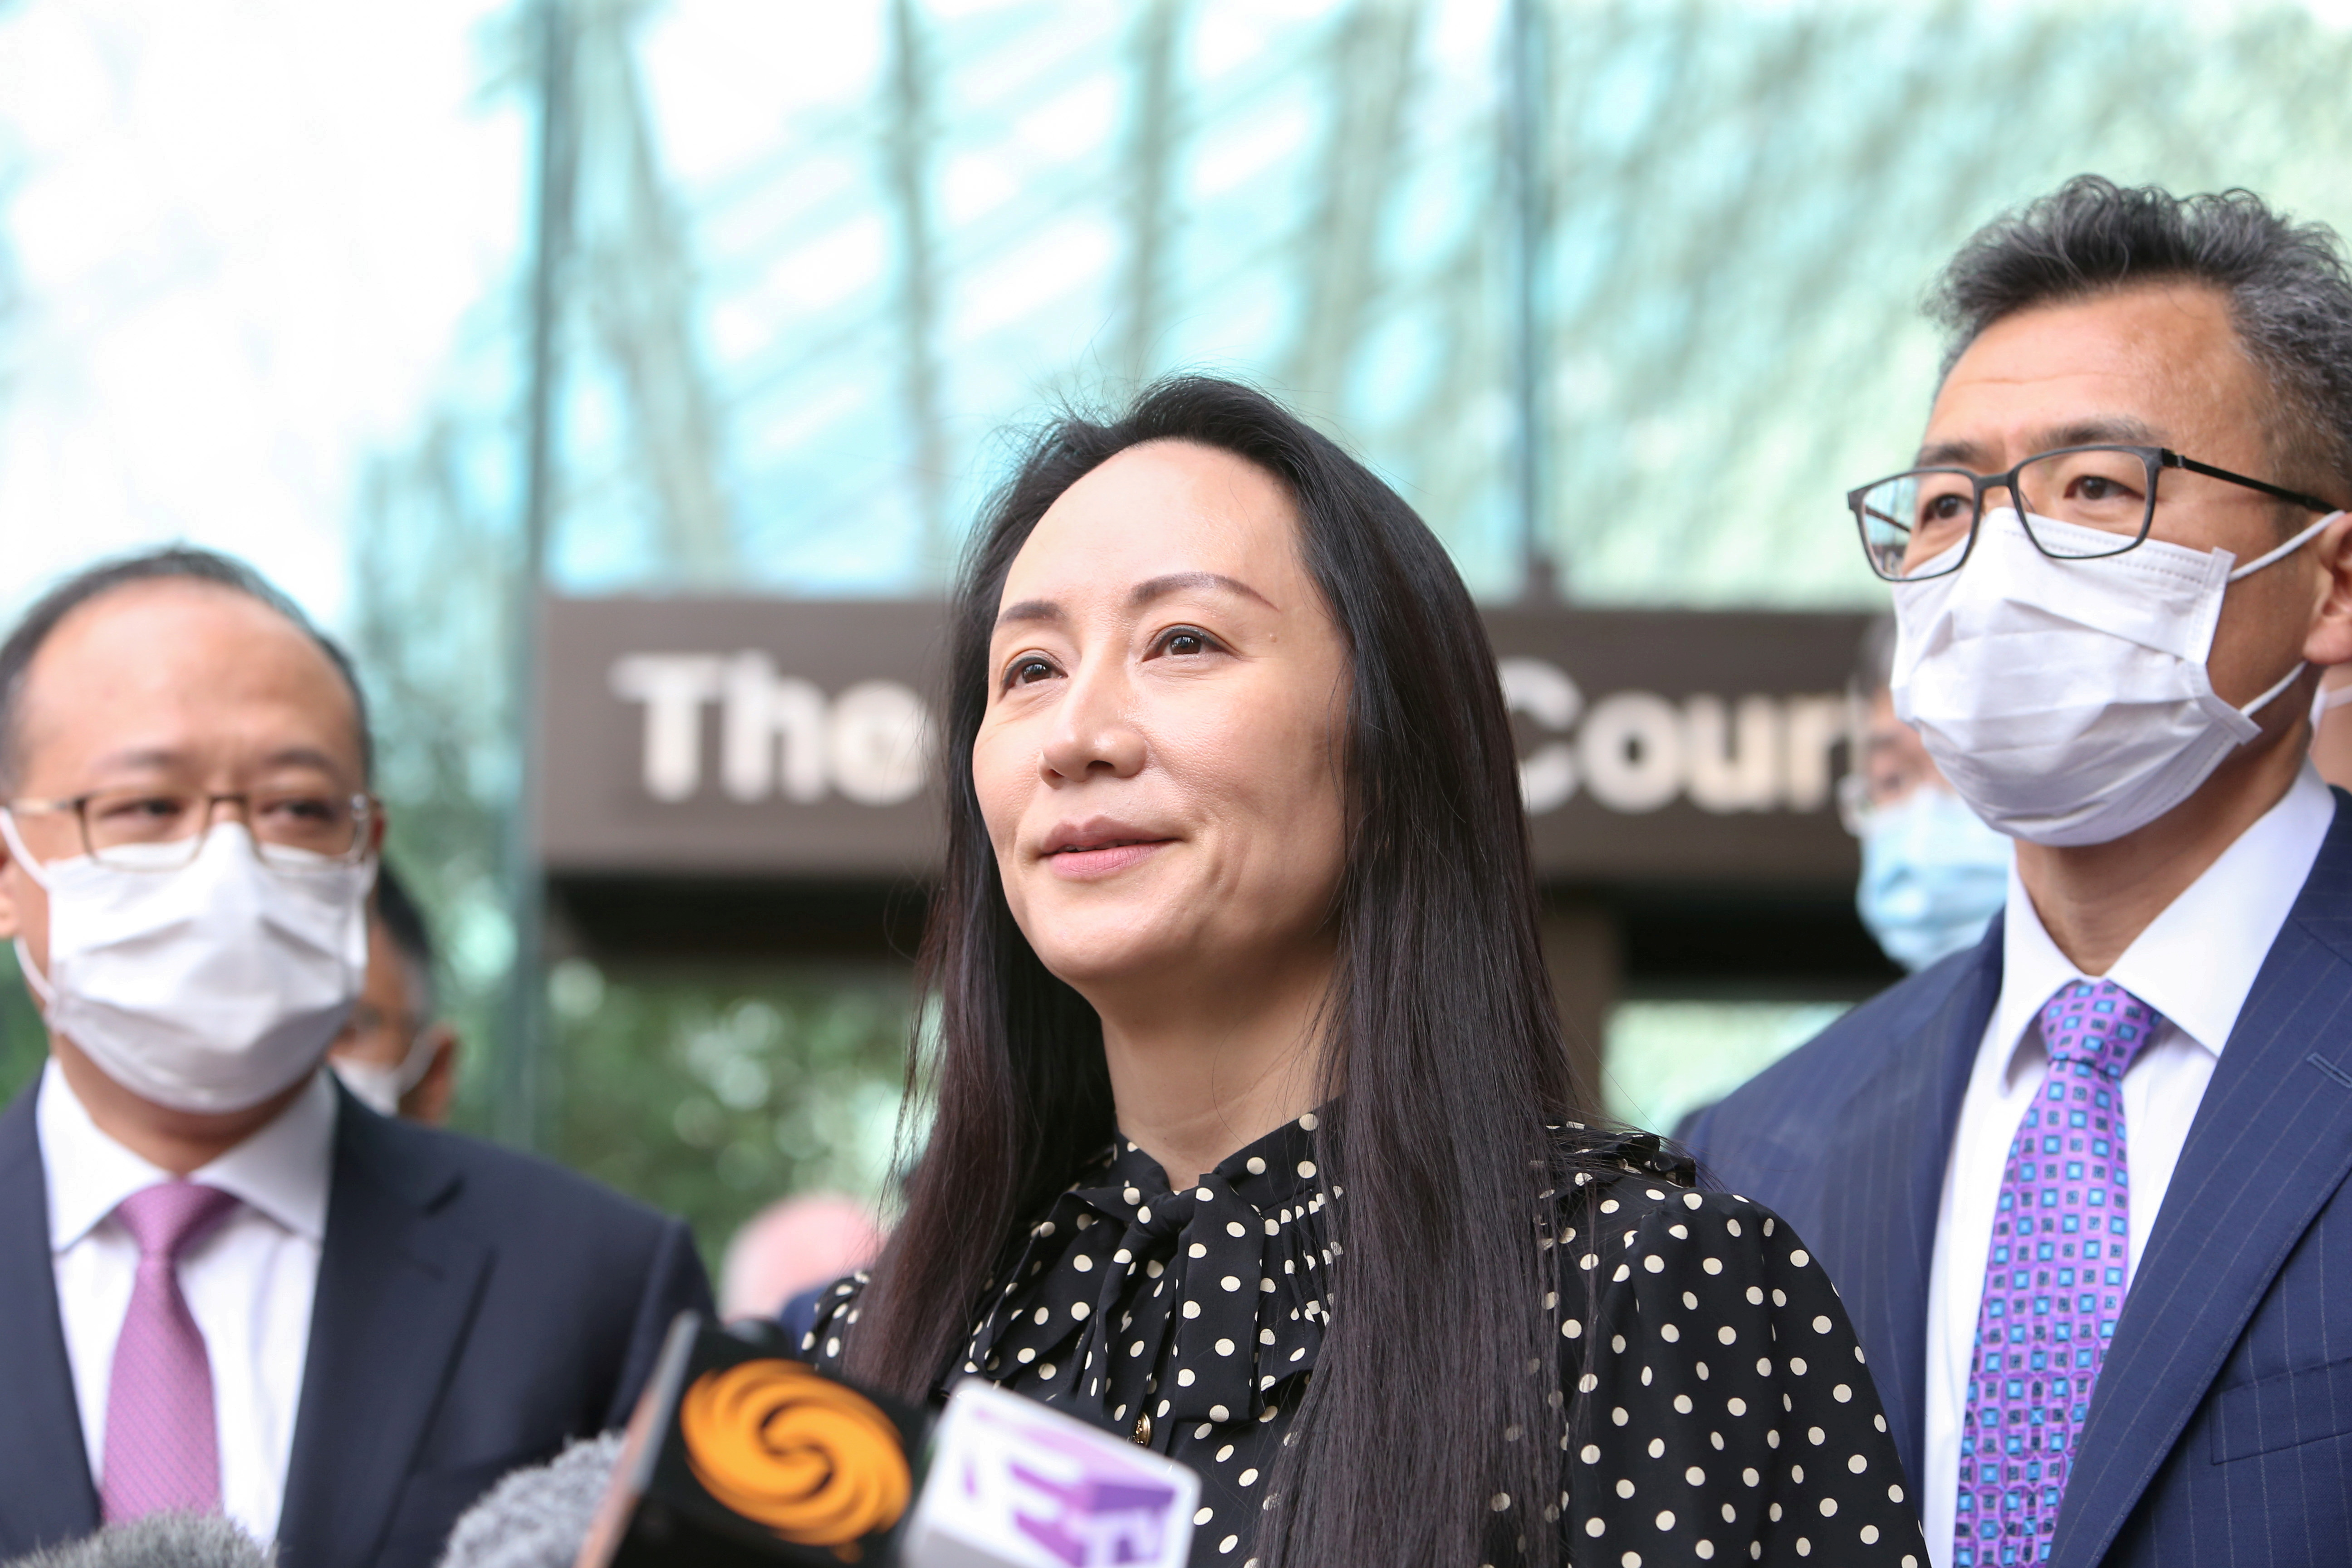 Huawei Technologies Chief Financial Officer Meng Wanzhou speaks to media outside the B.C. Supreme Court following a hearing about her release in Vancouver, British Columbia, Canada September 24, 2021.  REUTERS/Jesse Winter